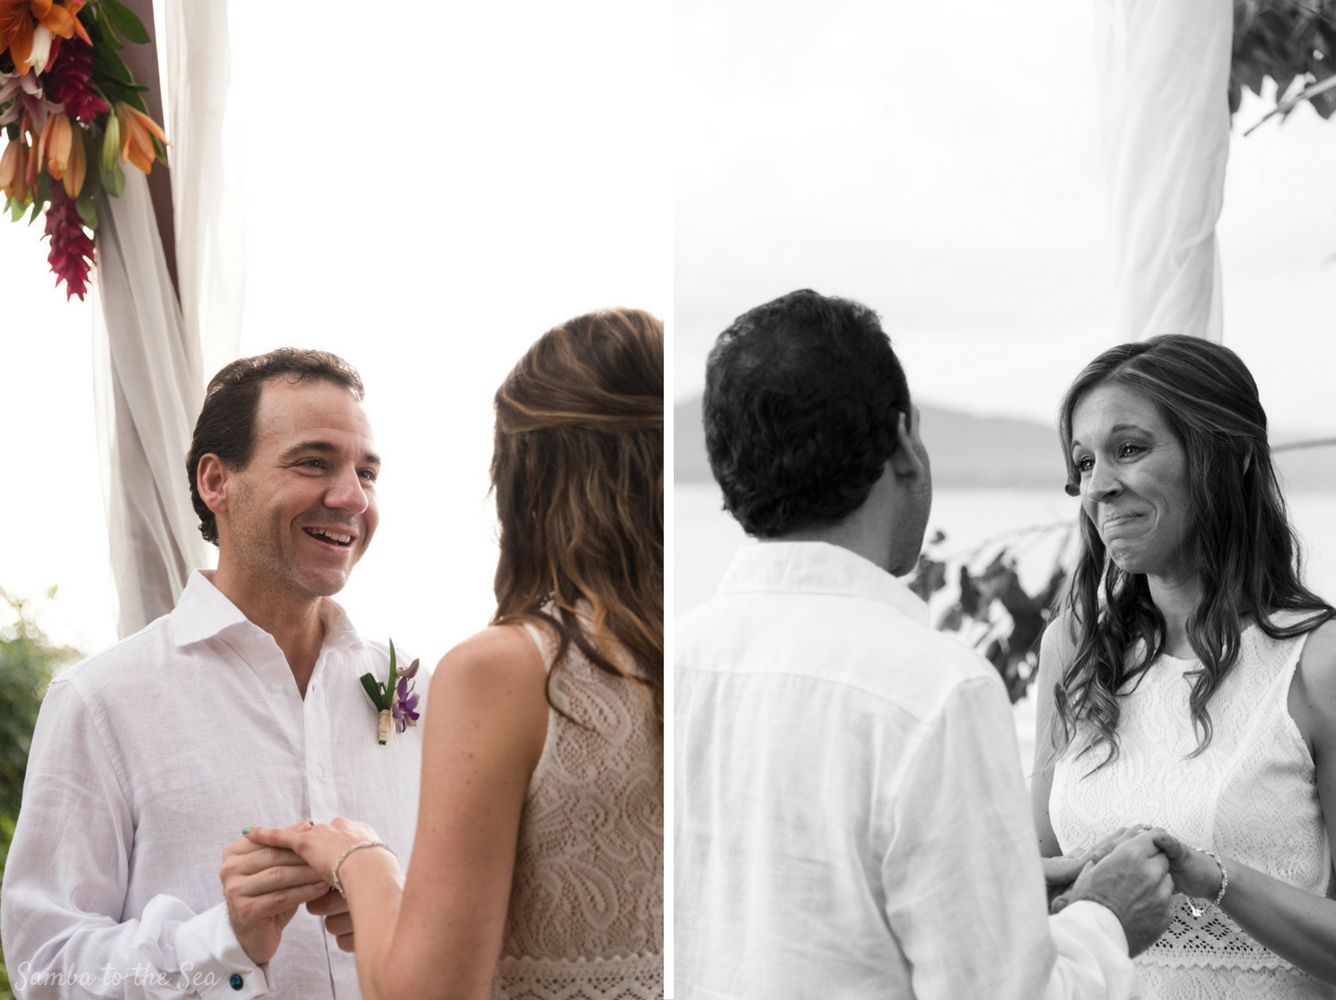 Couple exchanging vows during their elopement at Langosta Beach Club in Tamarindo, Costa Rica. Photographed by Kristen M. Brown, Samba to the Sea Photography.